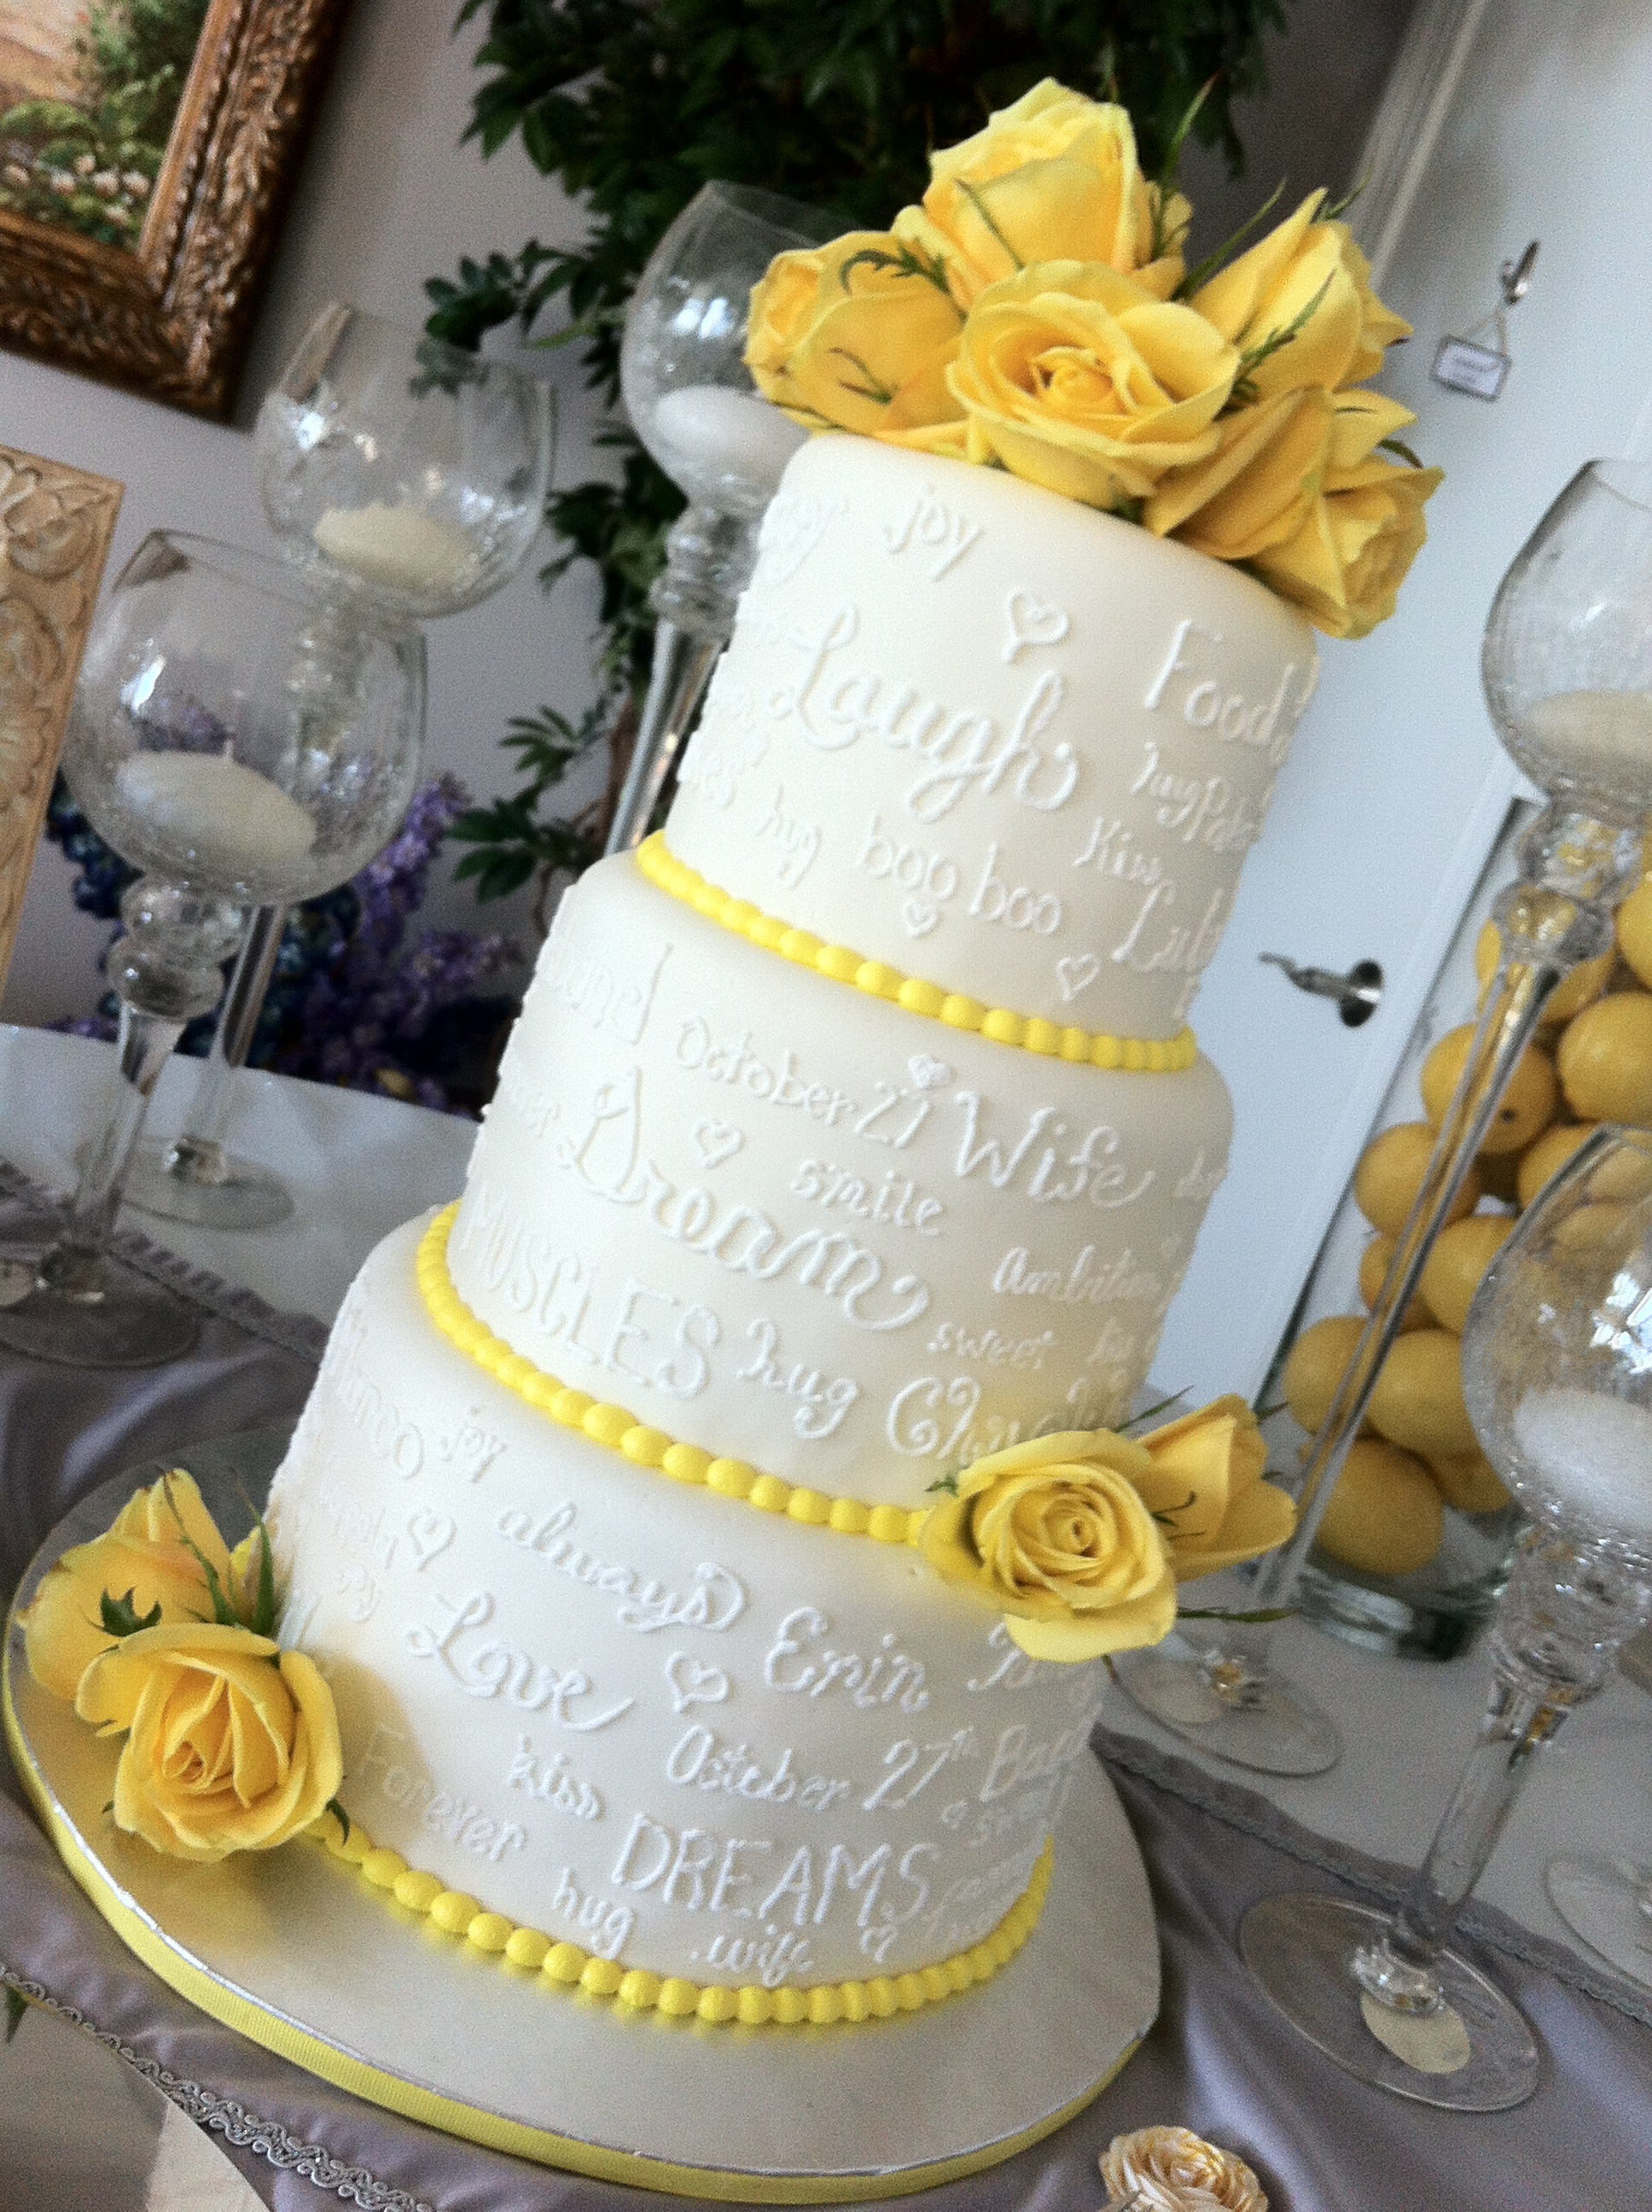 Erin 3 tier wedding cake with love notes yellow accents 1936 2592 in wedding cakes junglespirit Gallery